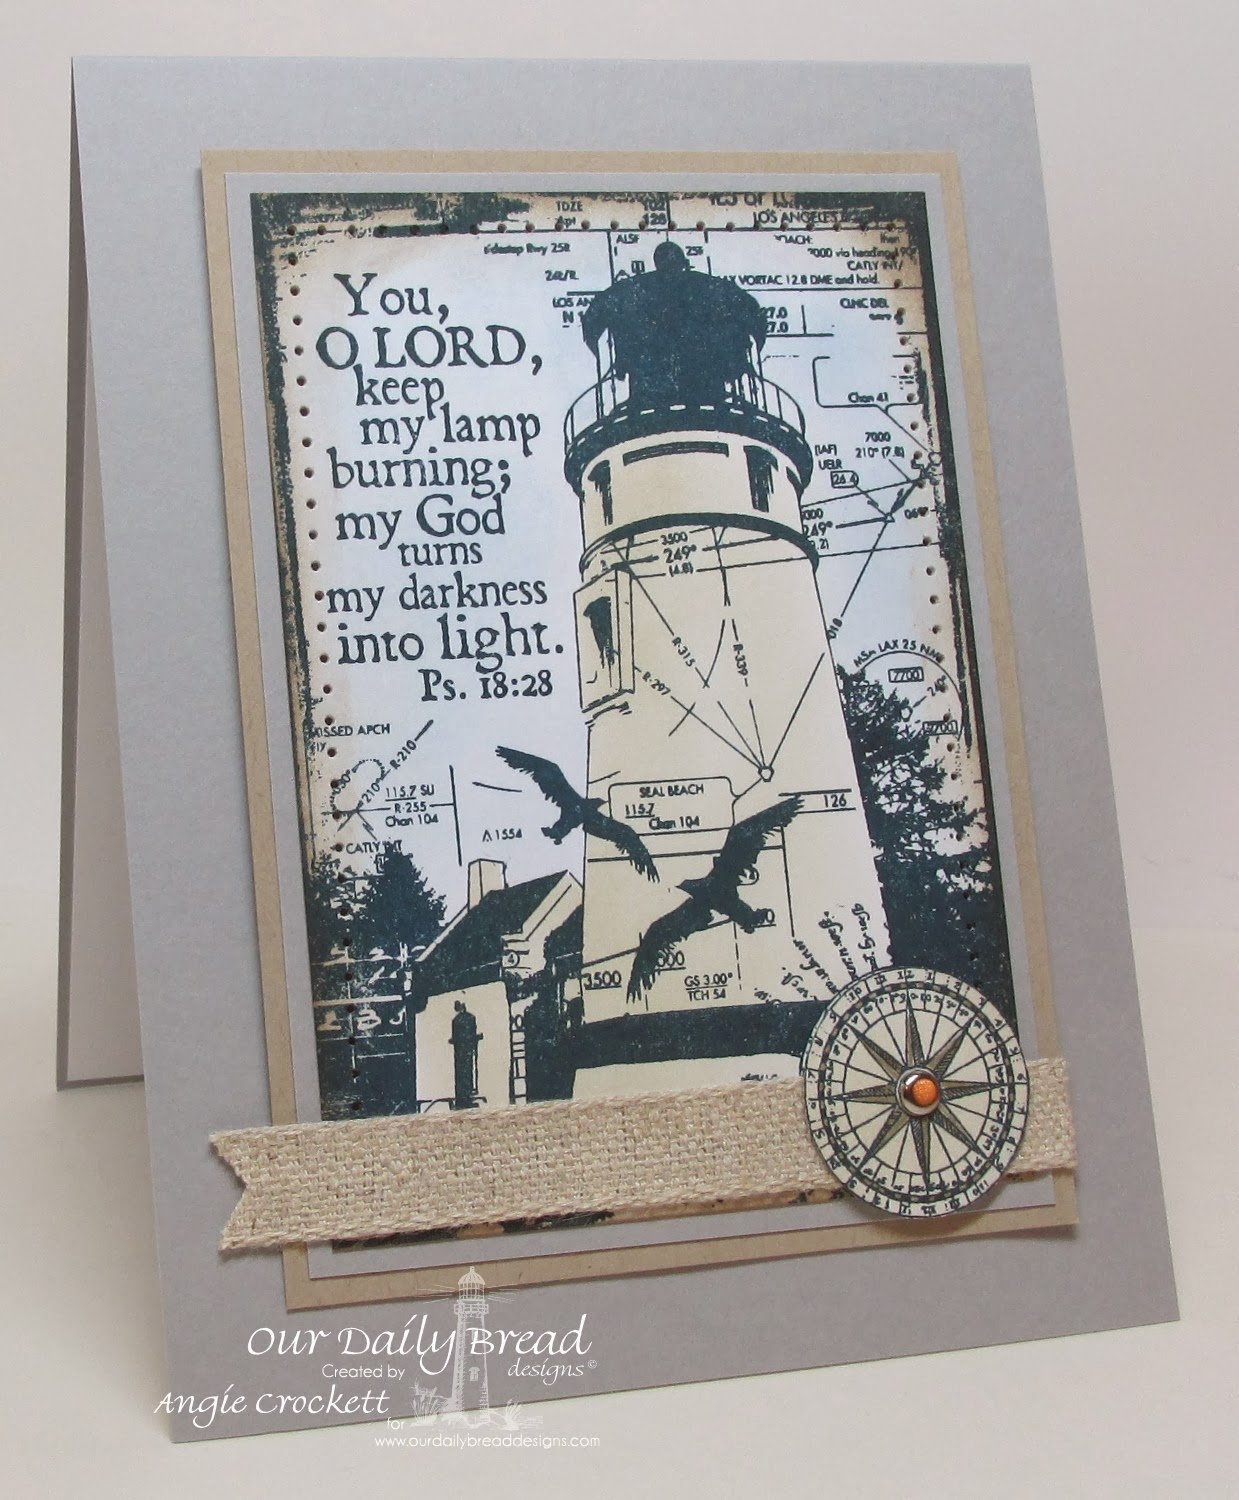 ODBD Keep My Lamp Burning, Card Designer Angie Crockett